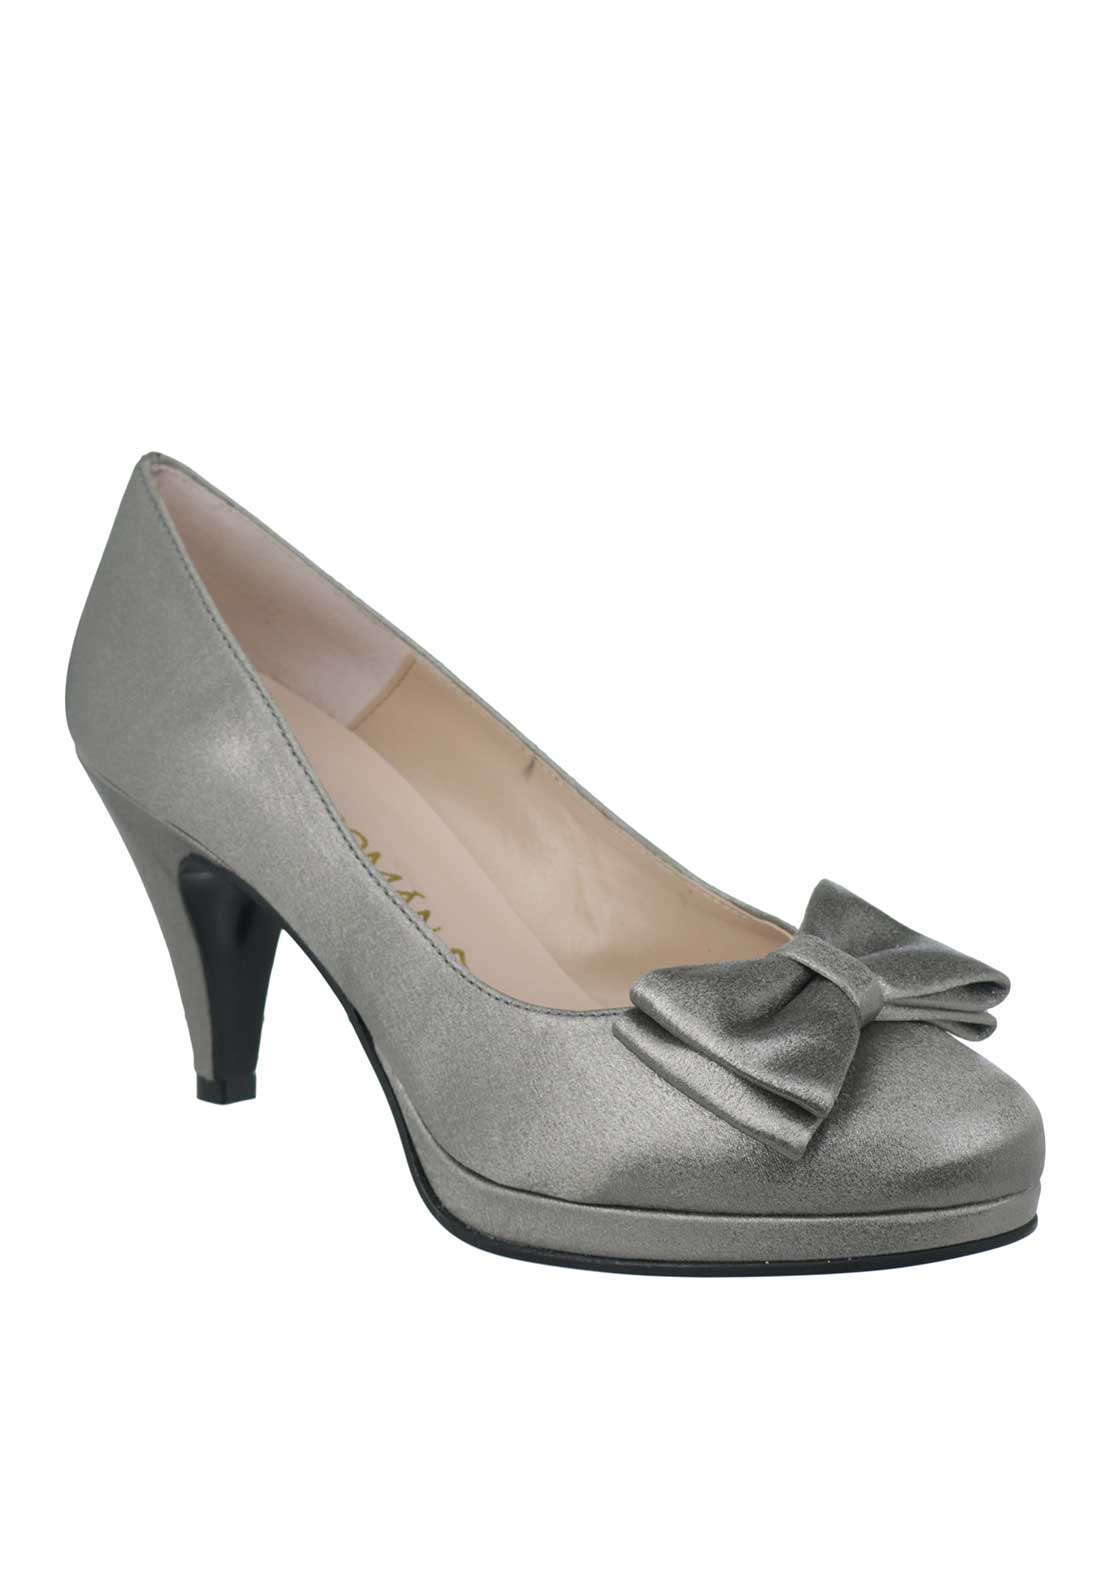 Ana Roman Satin Shimmer Bow Heeled Court Shoes, Pewter